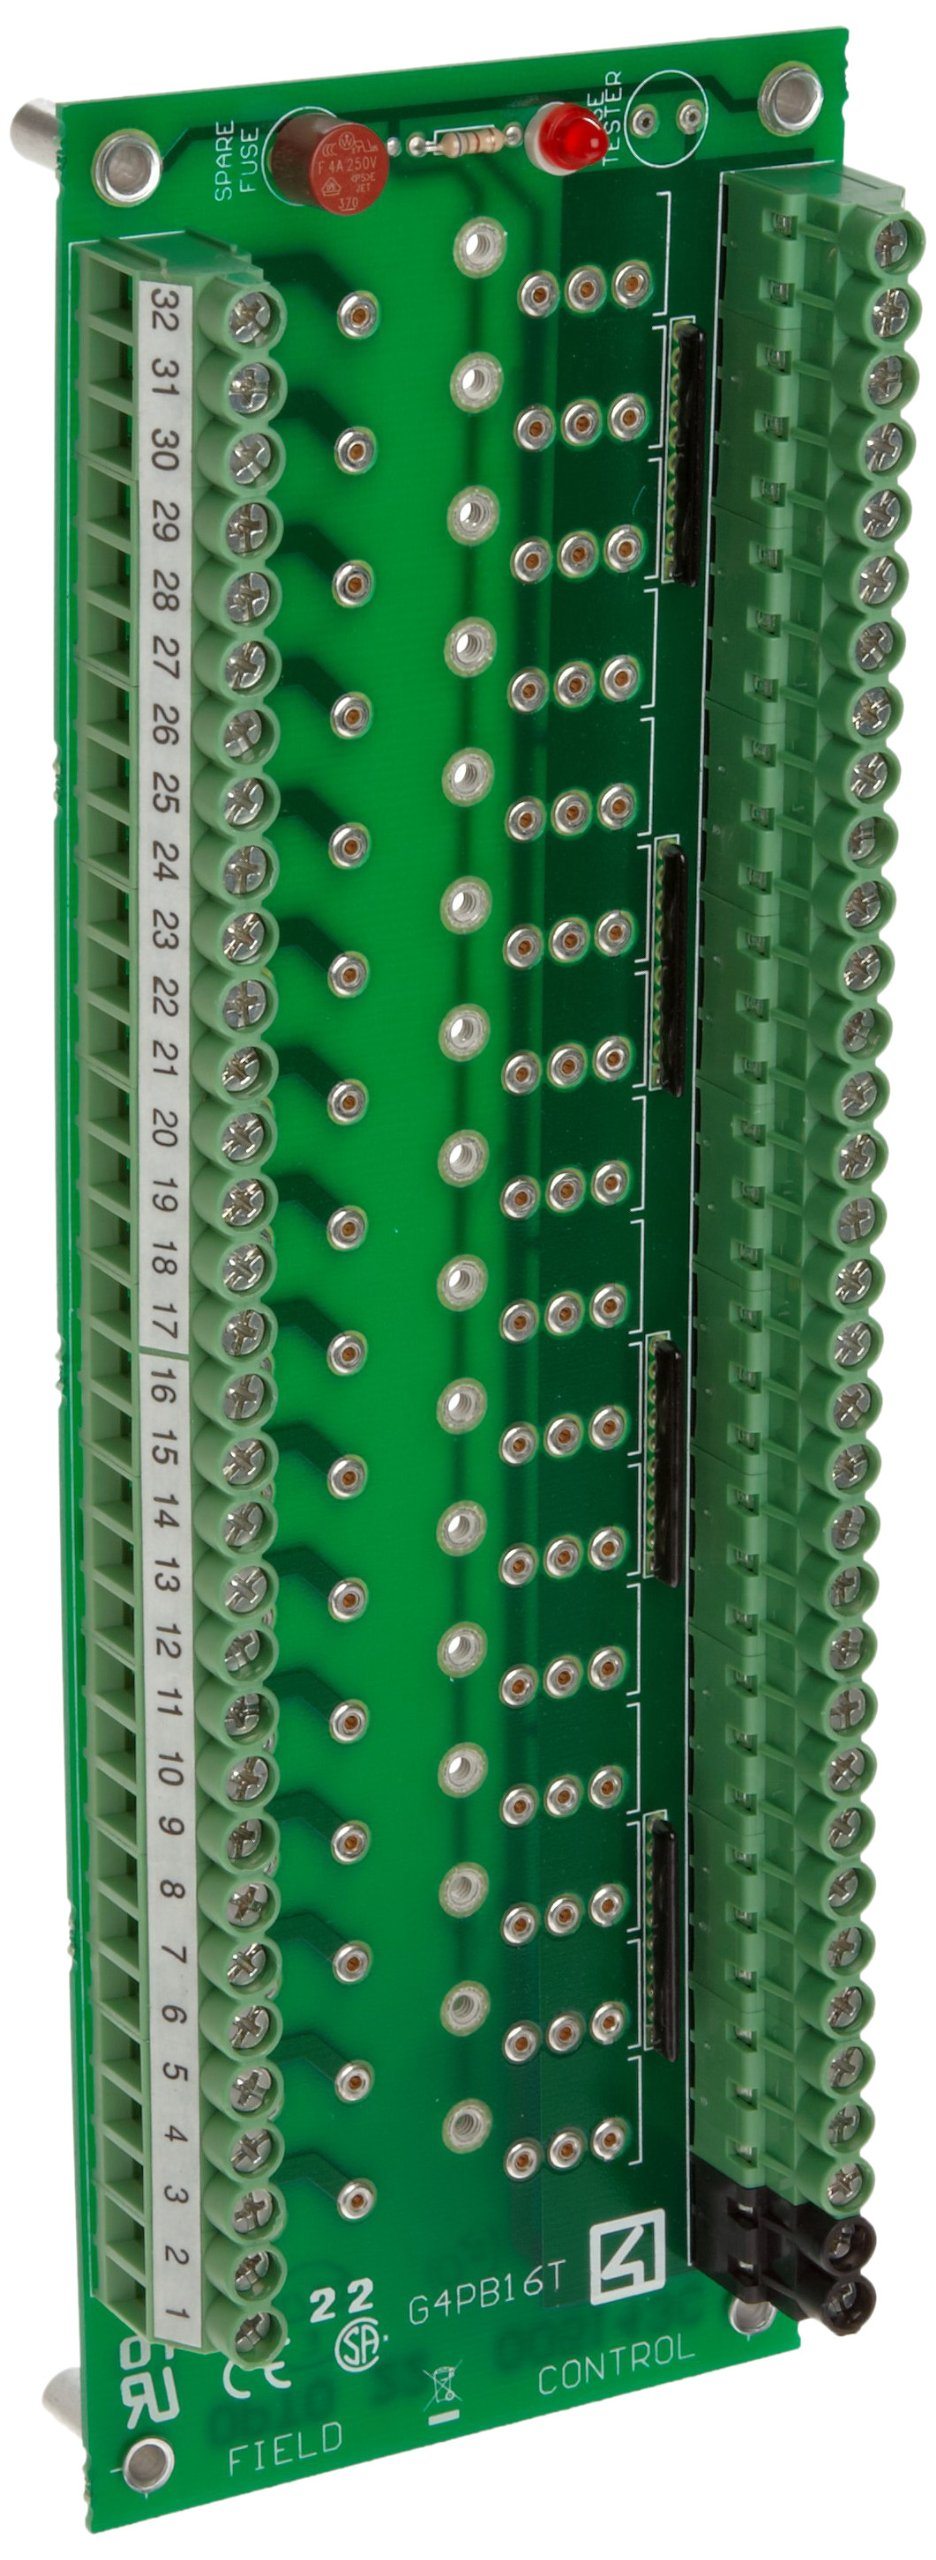 Opto 22 G4PB16T G4 16 Channel I/O Module Rack Terminal Strip by Opto 22 (Image #1)